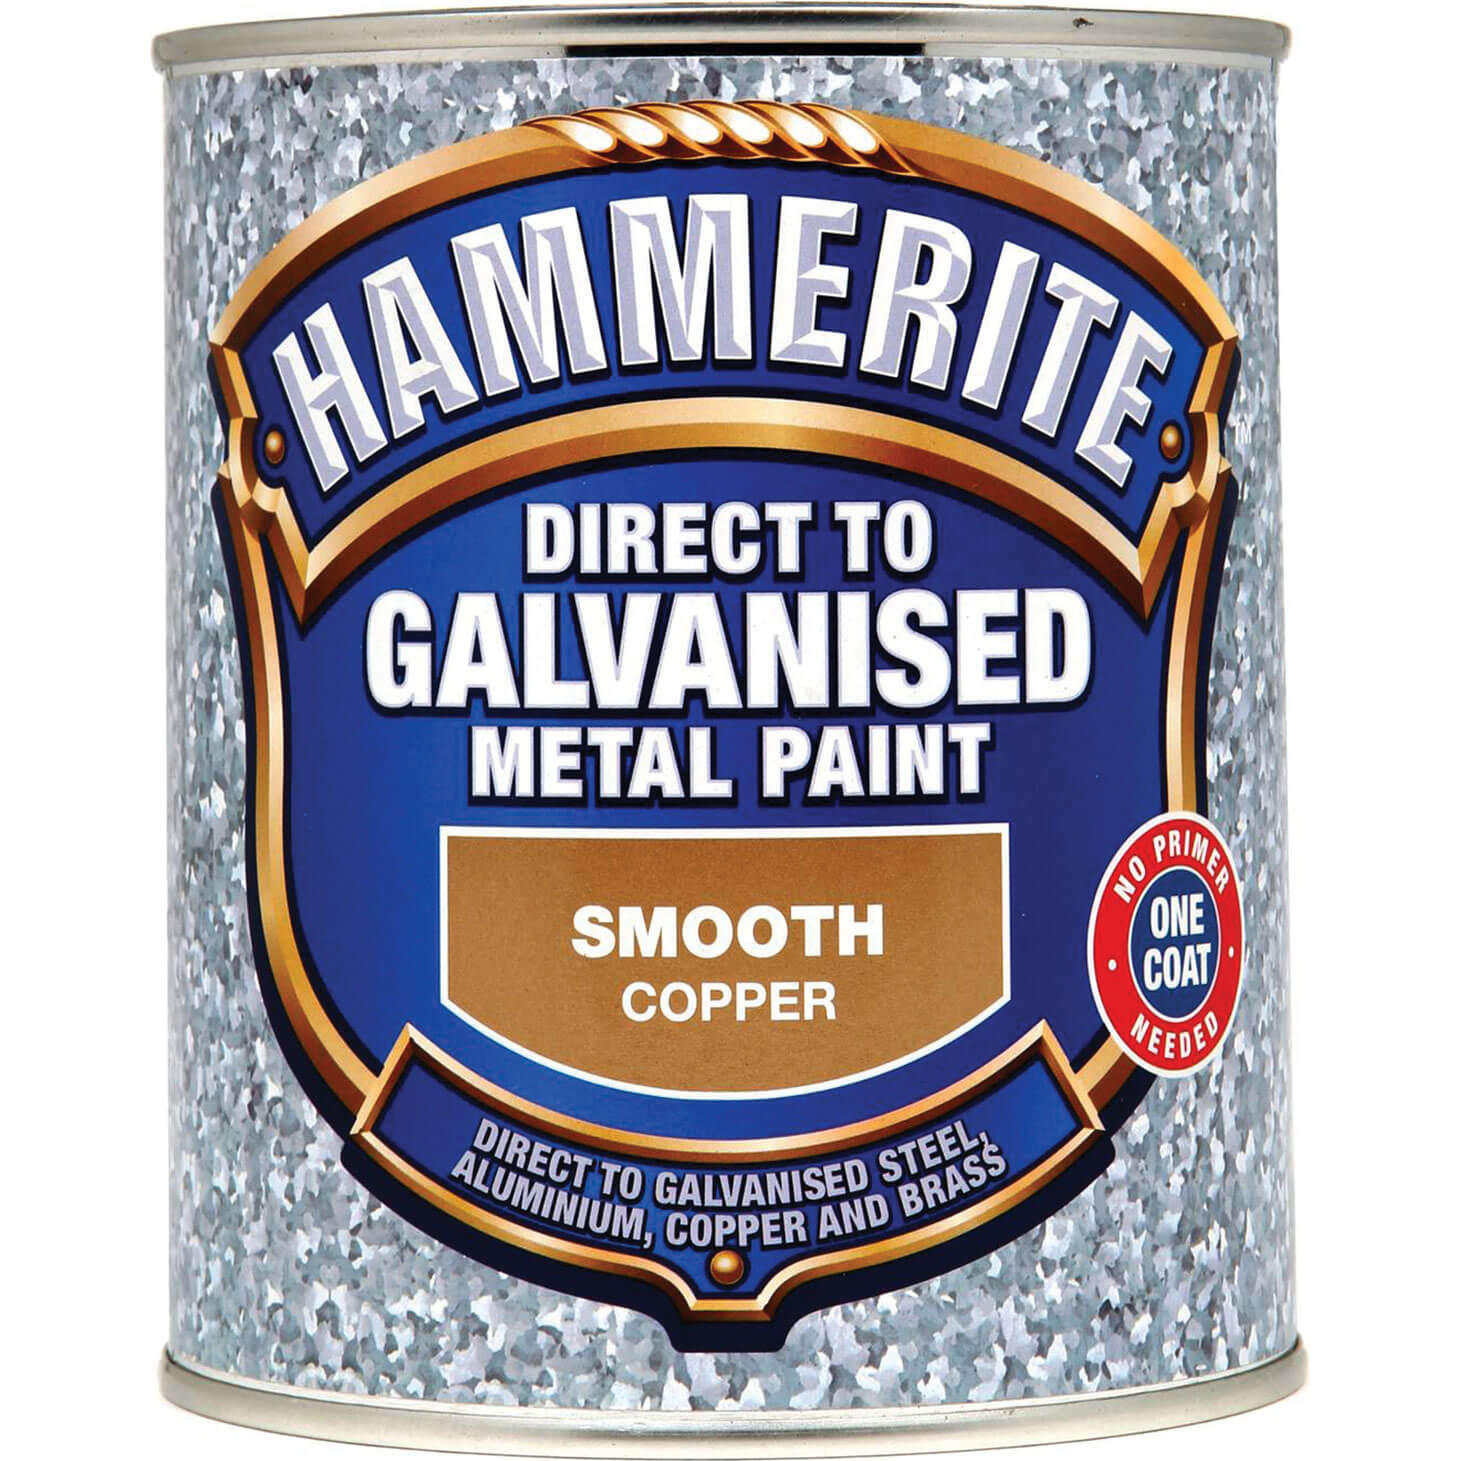 Image of Hammerite Direct to Galvanised Metal Paint Copper 750ml